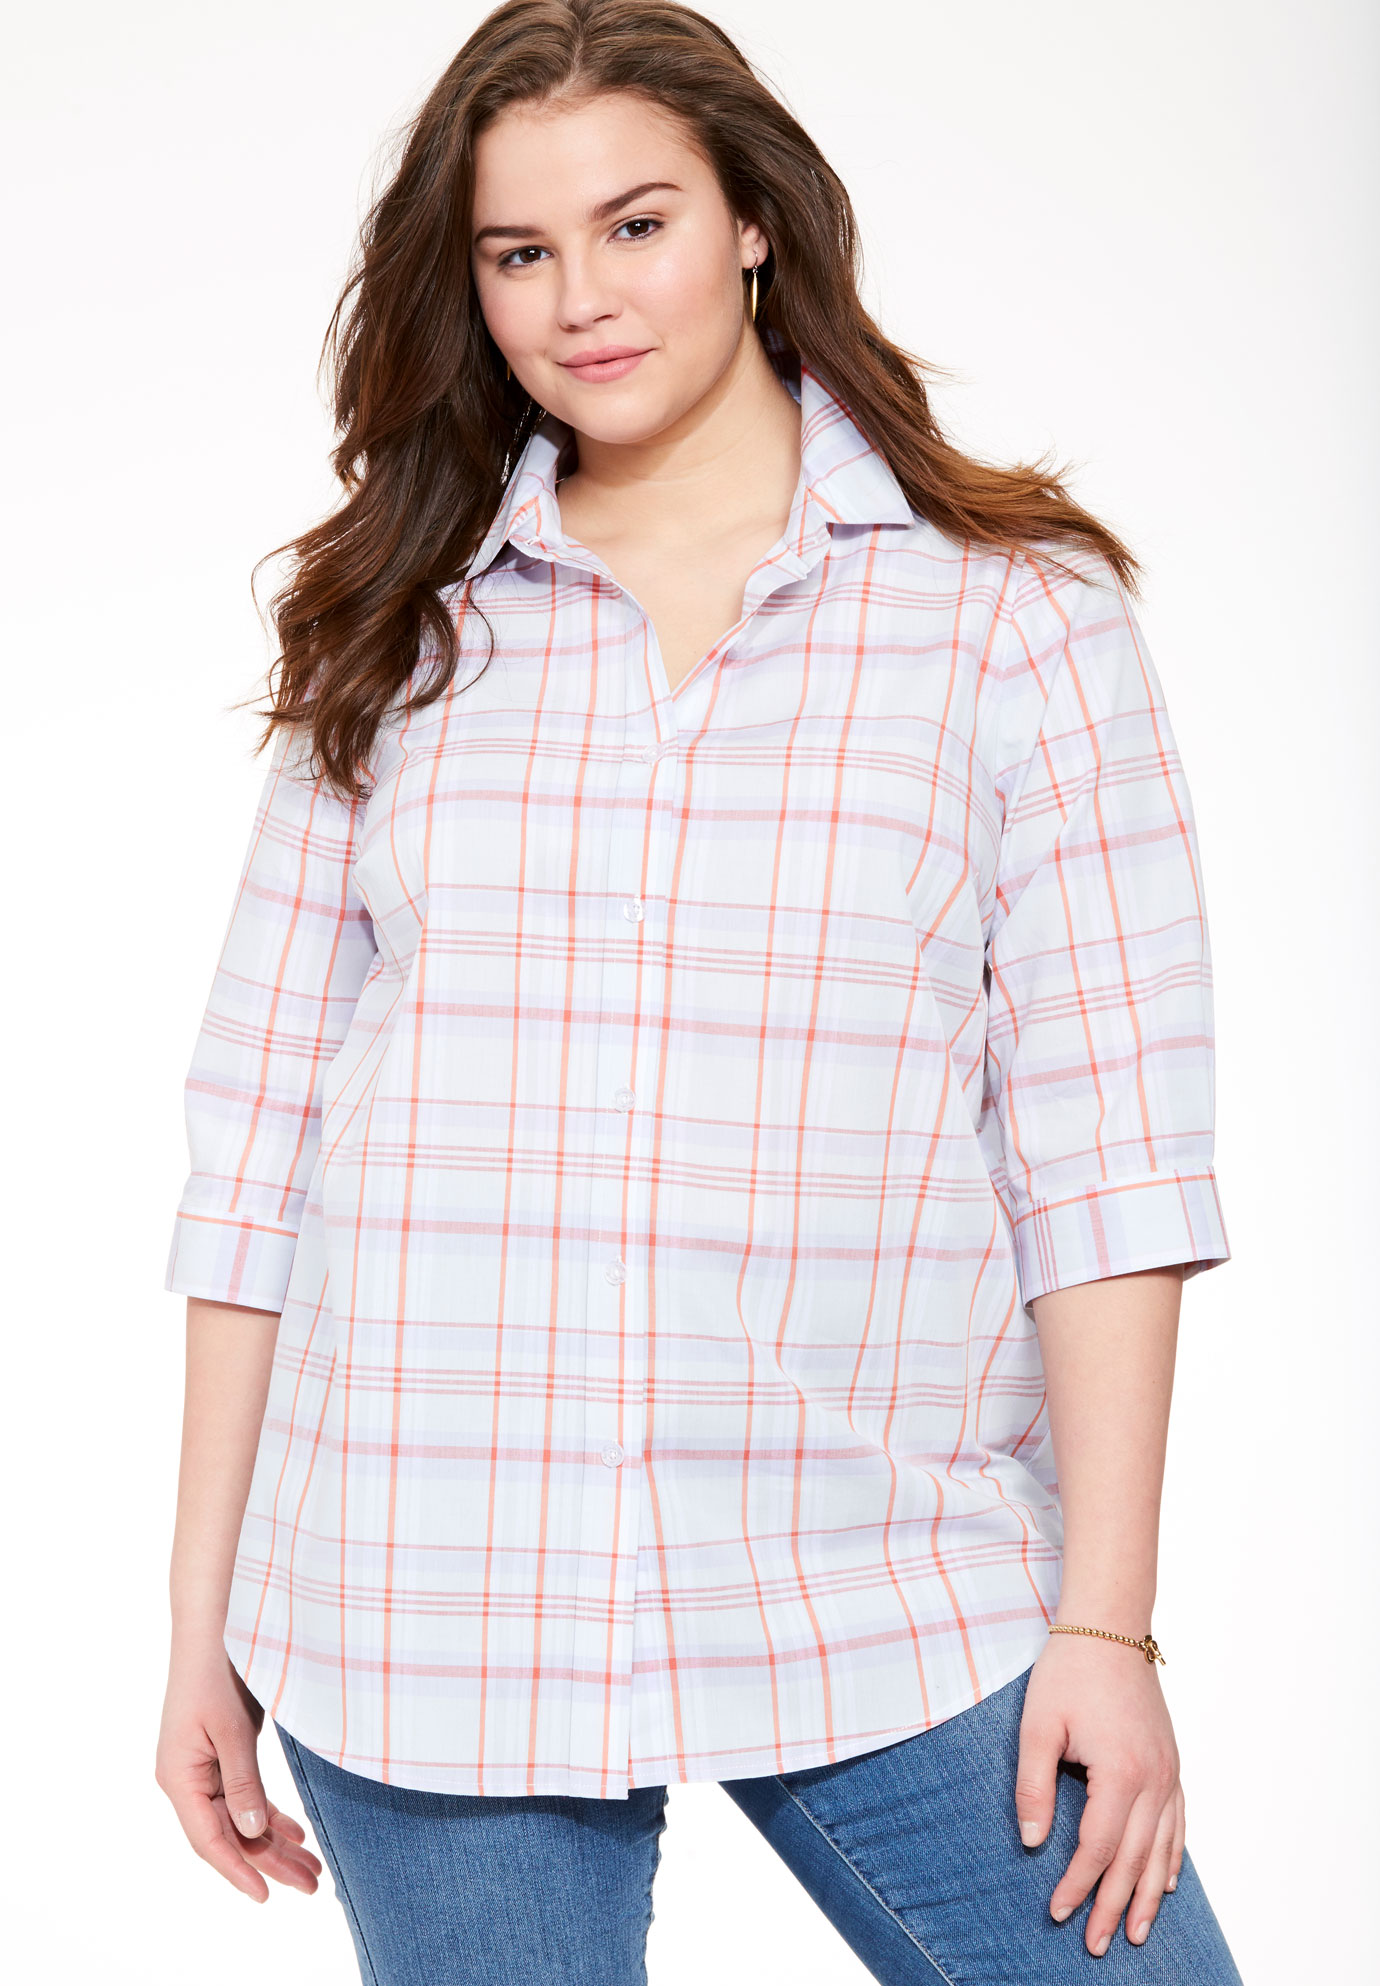 The Perfect bigshirt with 3/4 sleeves, ORANGE PLAID, hi-res